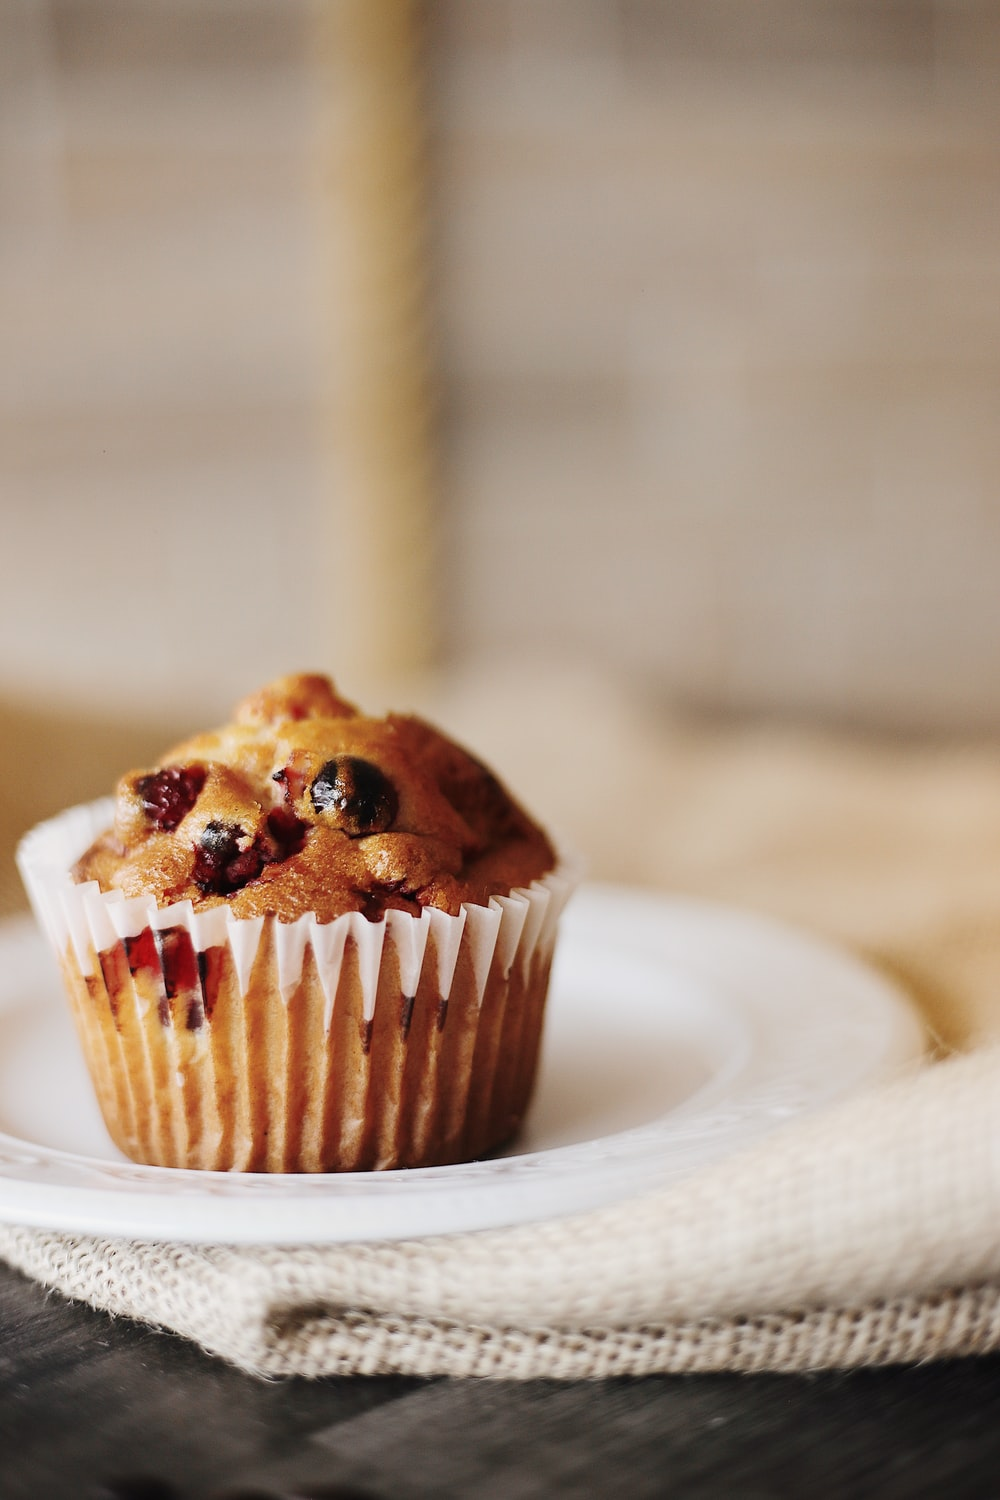 baked cupcake on plate